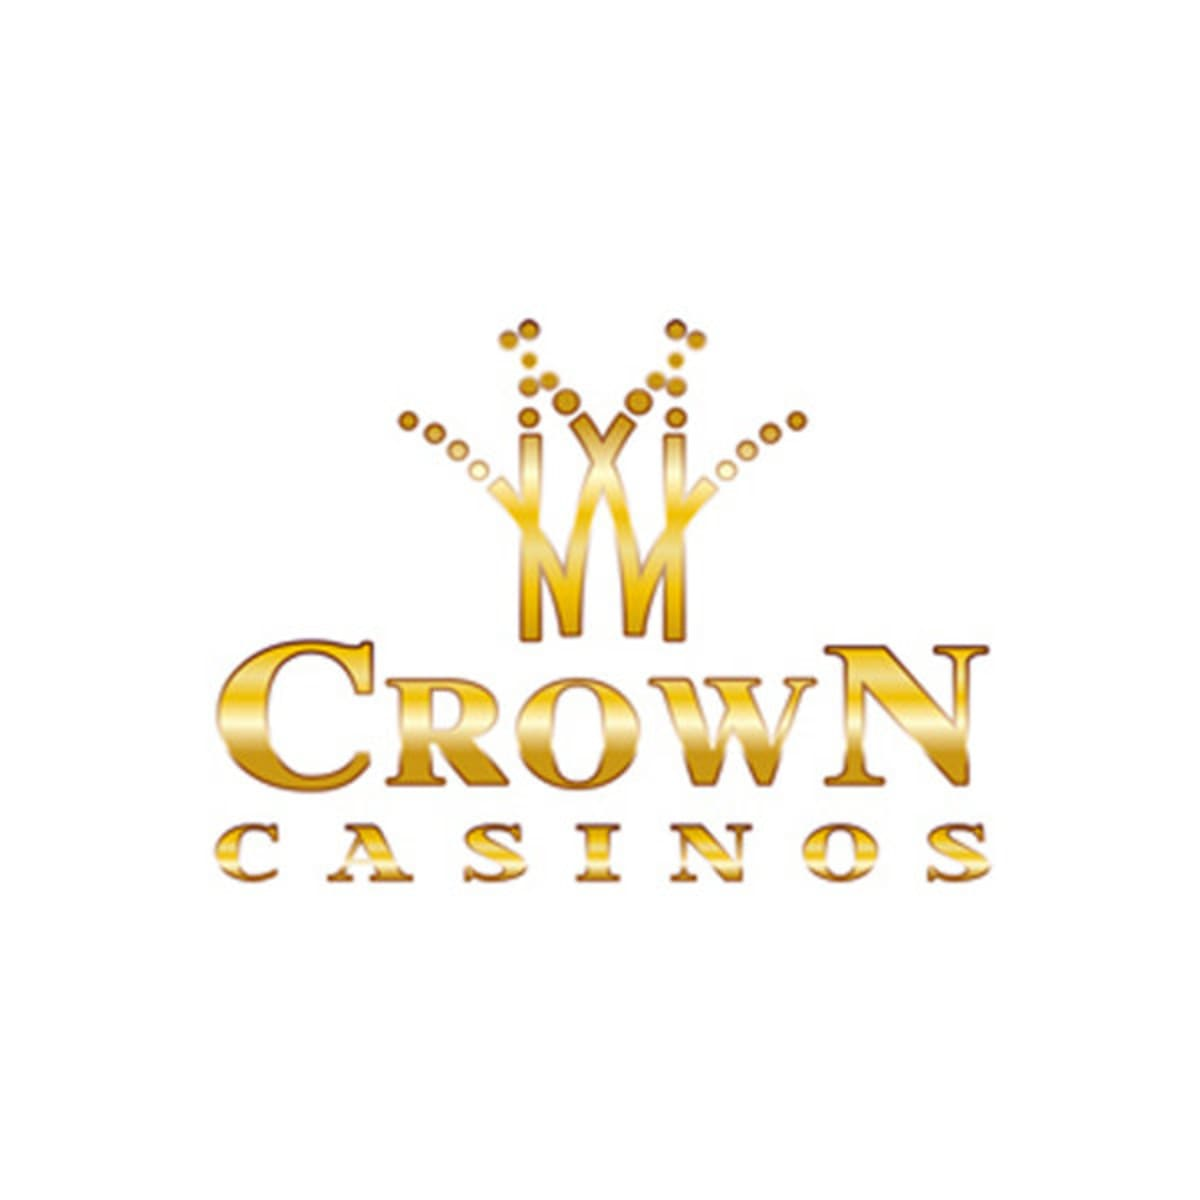 Crown casino melbourne playbonds gratis - 110631